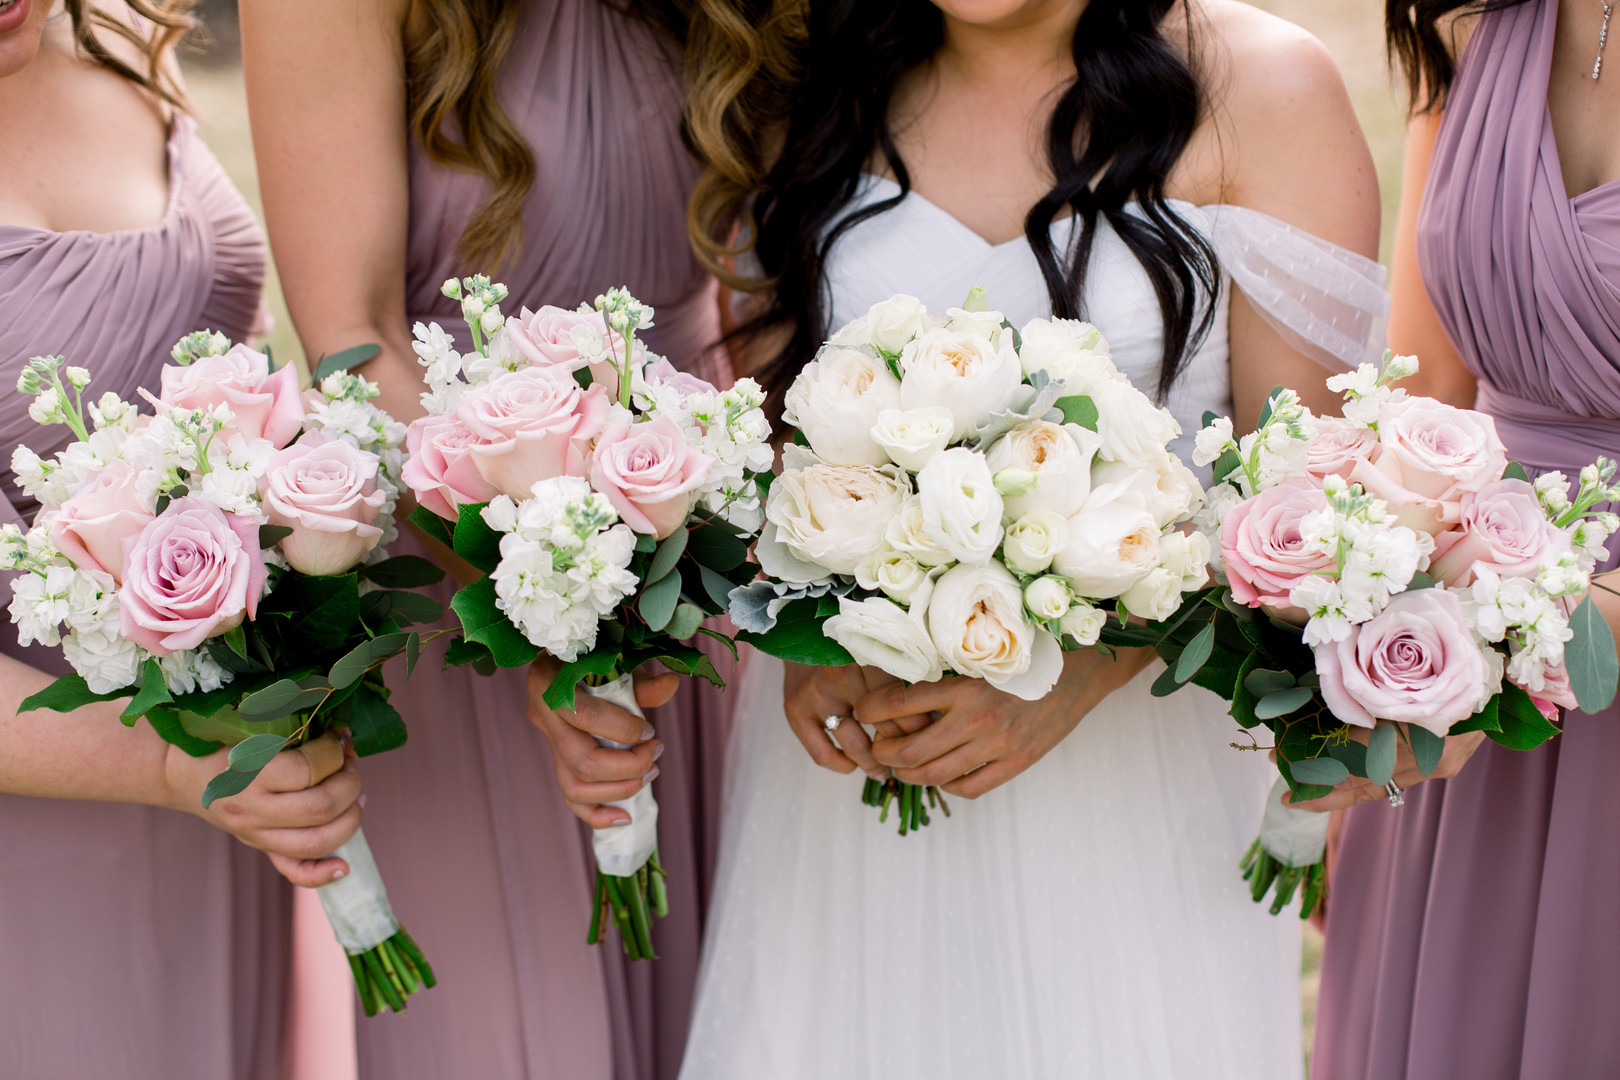 Pink and white wedding bouquets: Spring wedding inspiration captured by Nicole Morisco Photography. Find more spring wedding ideas at CHItheeWED.com!